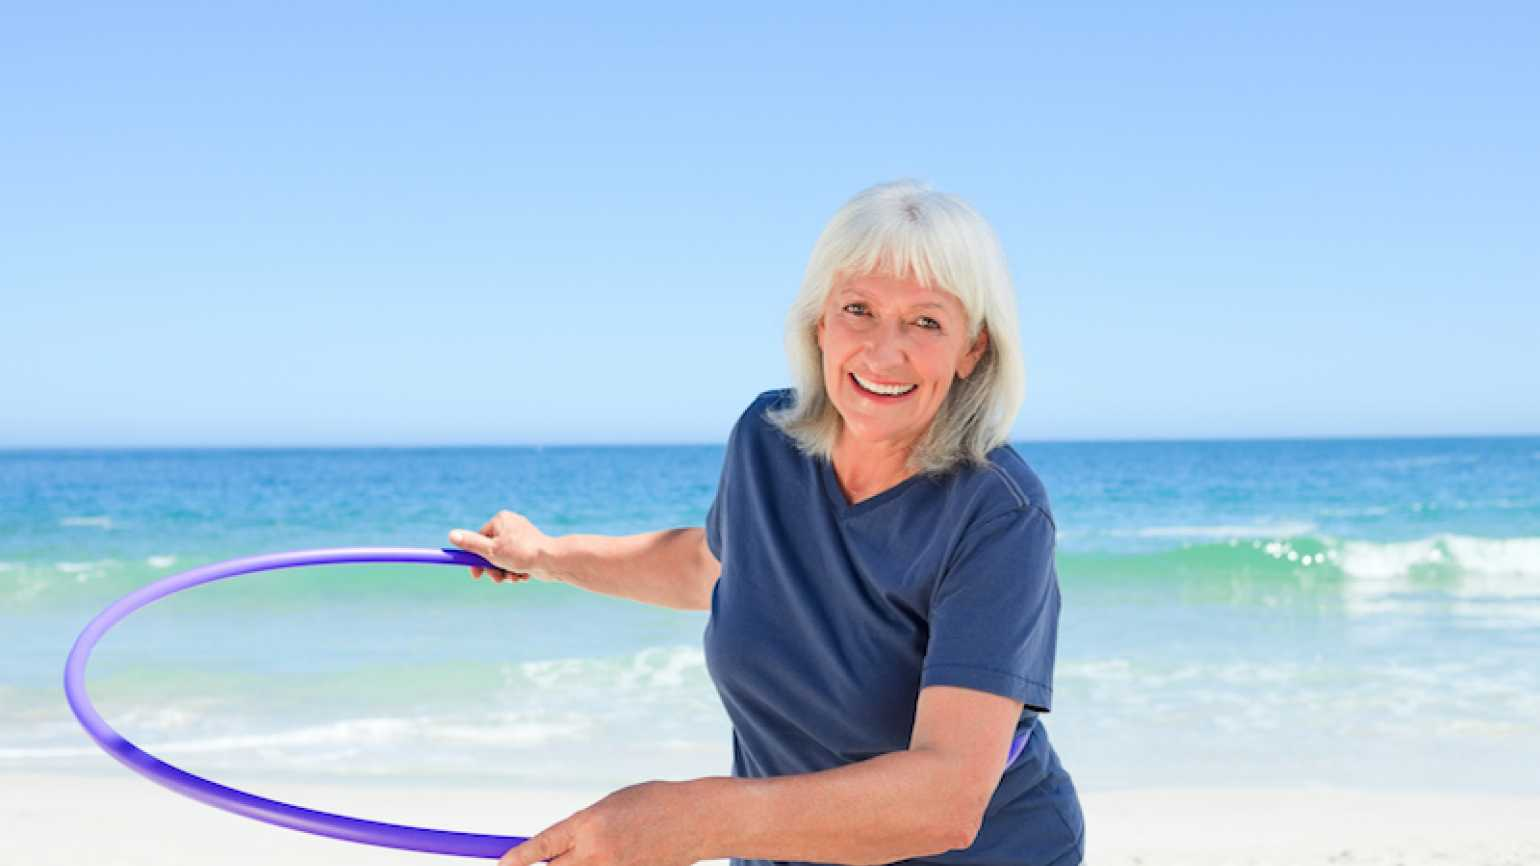 Photo of woman with hula hoop by Wavebreak Media for Thinkstock